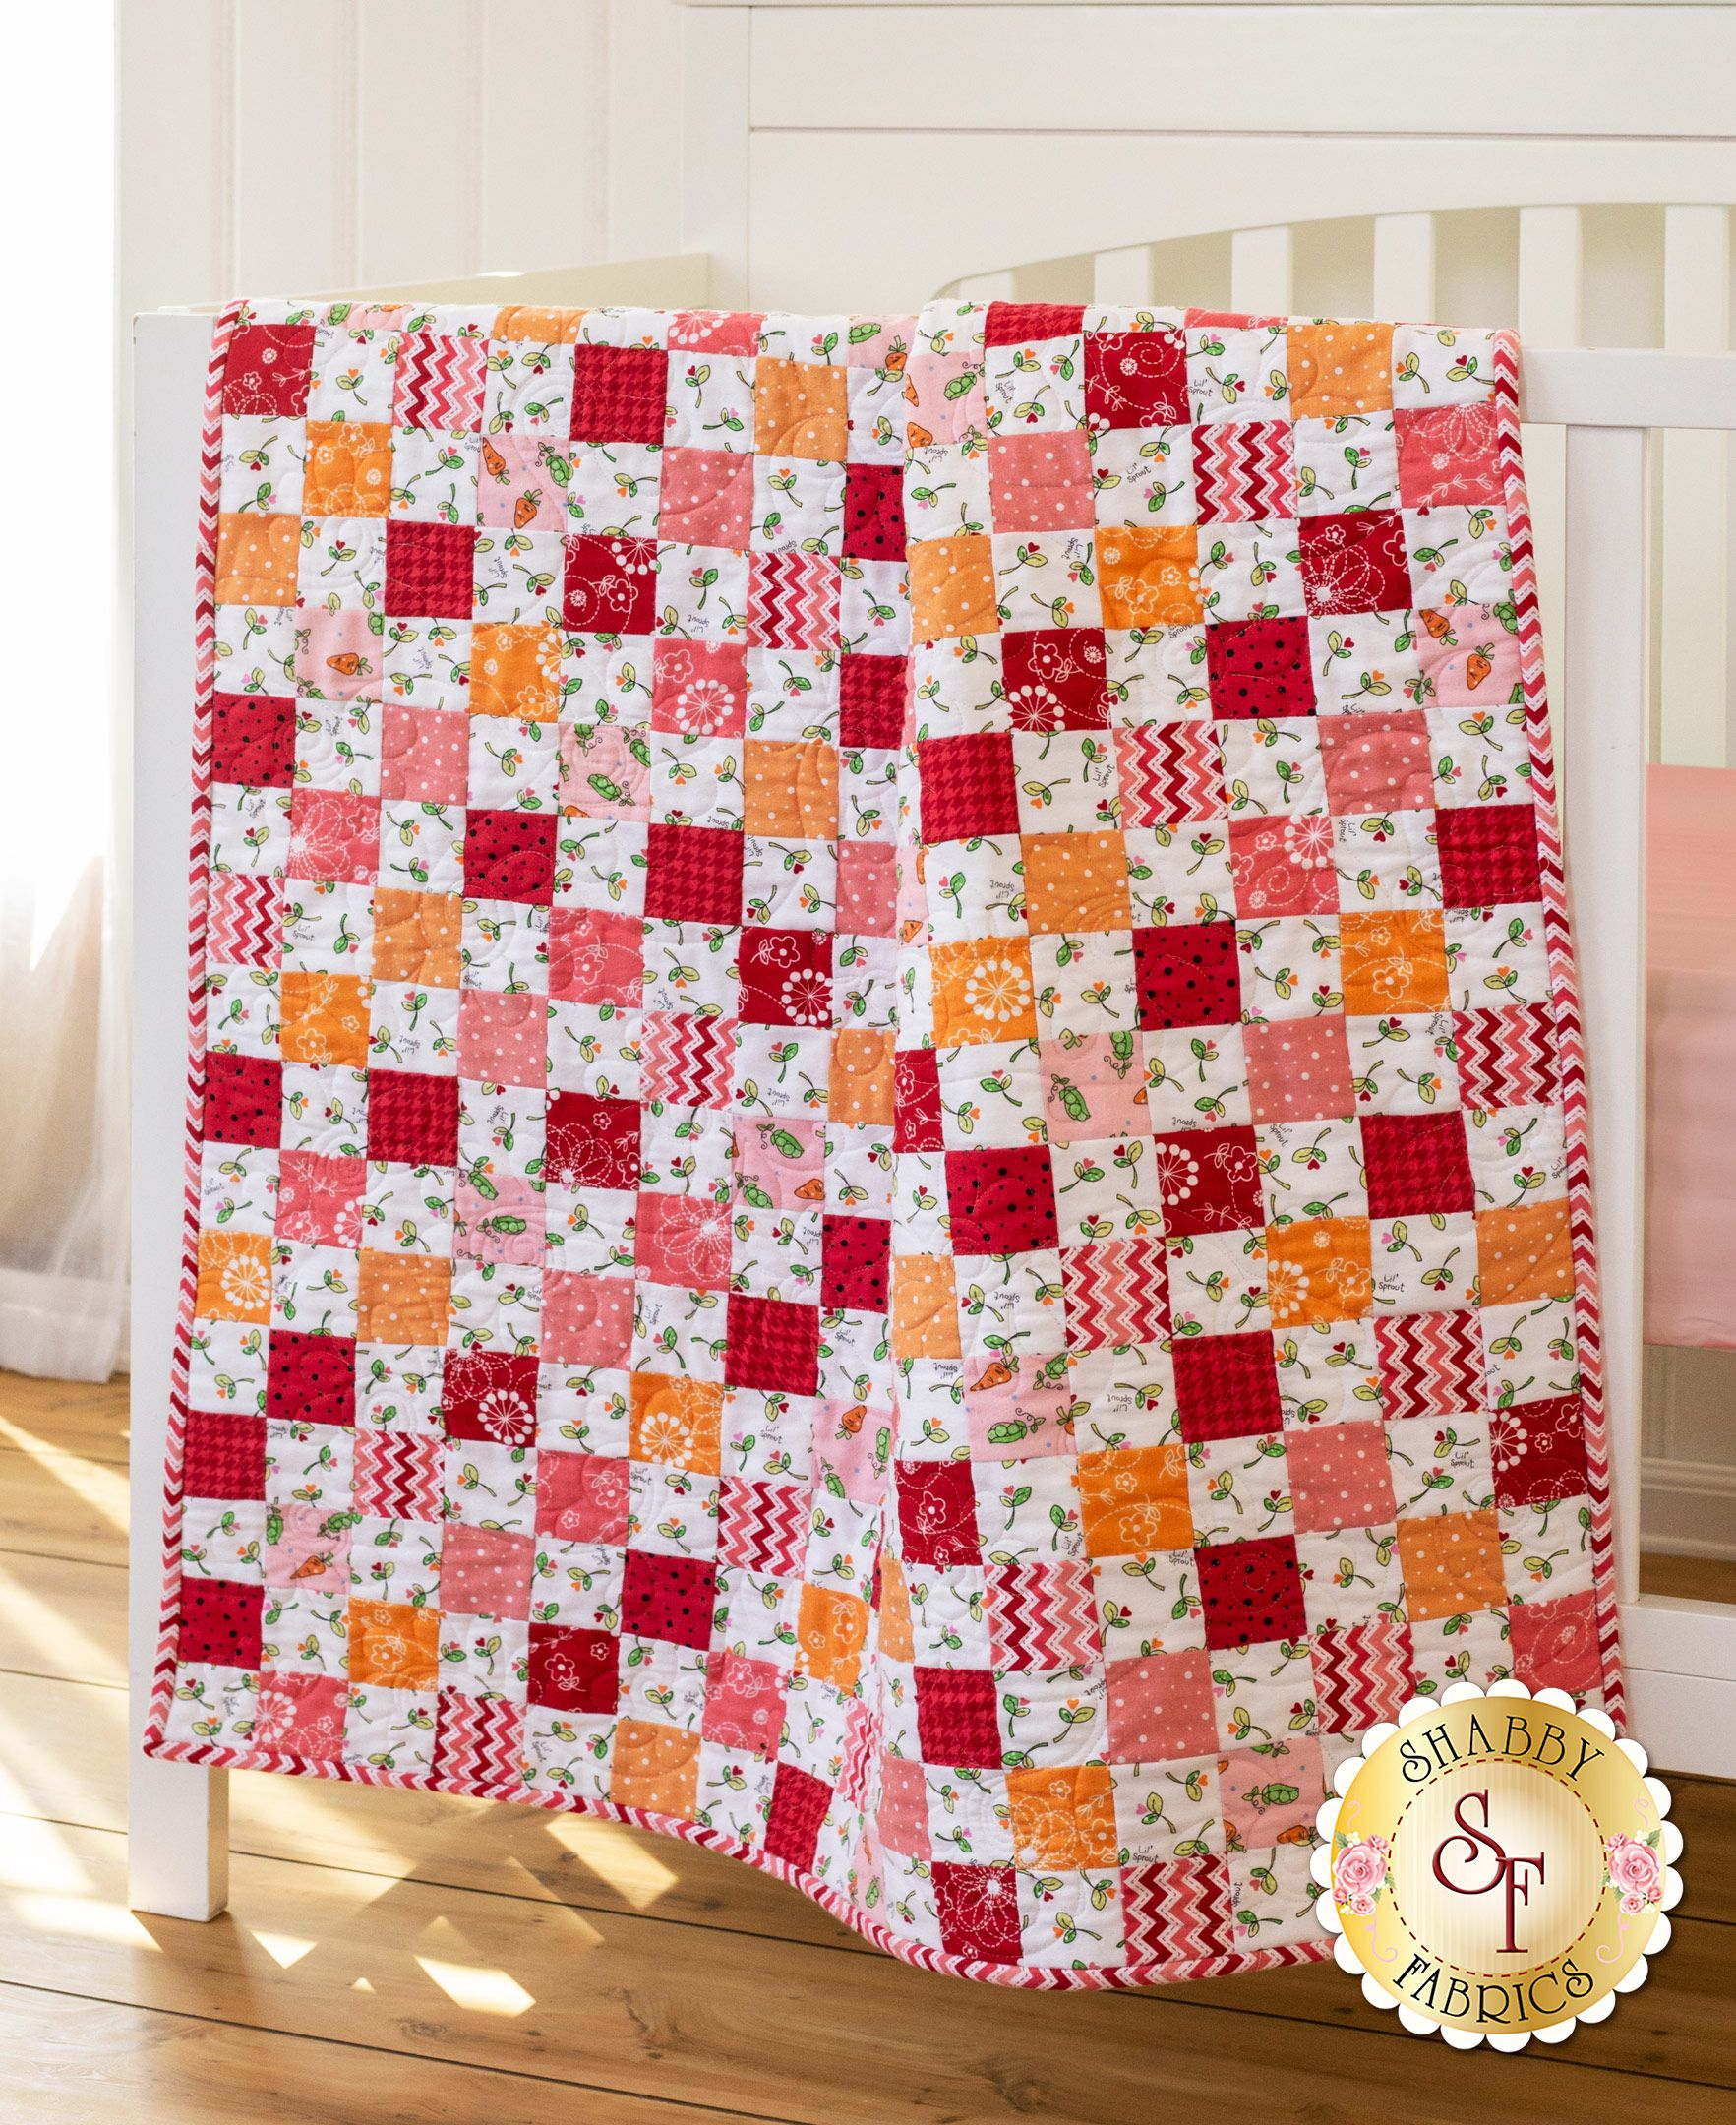 Crib Quilt Kit - Lil Sprout Flannel Pink | Kids & Baby